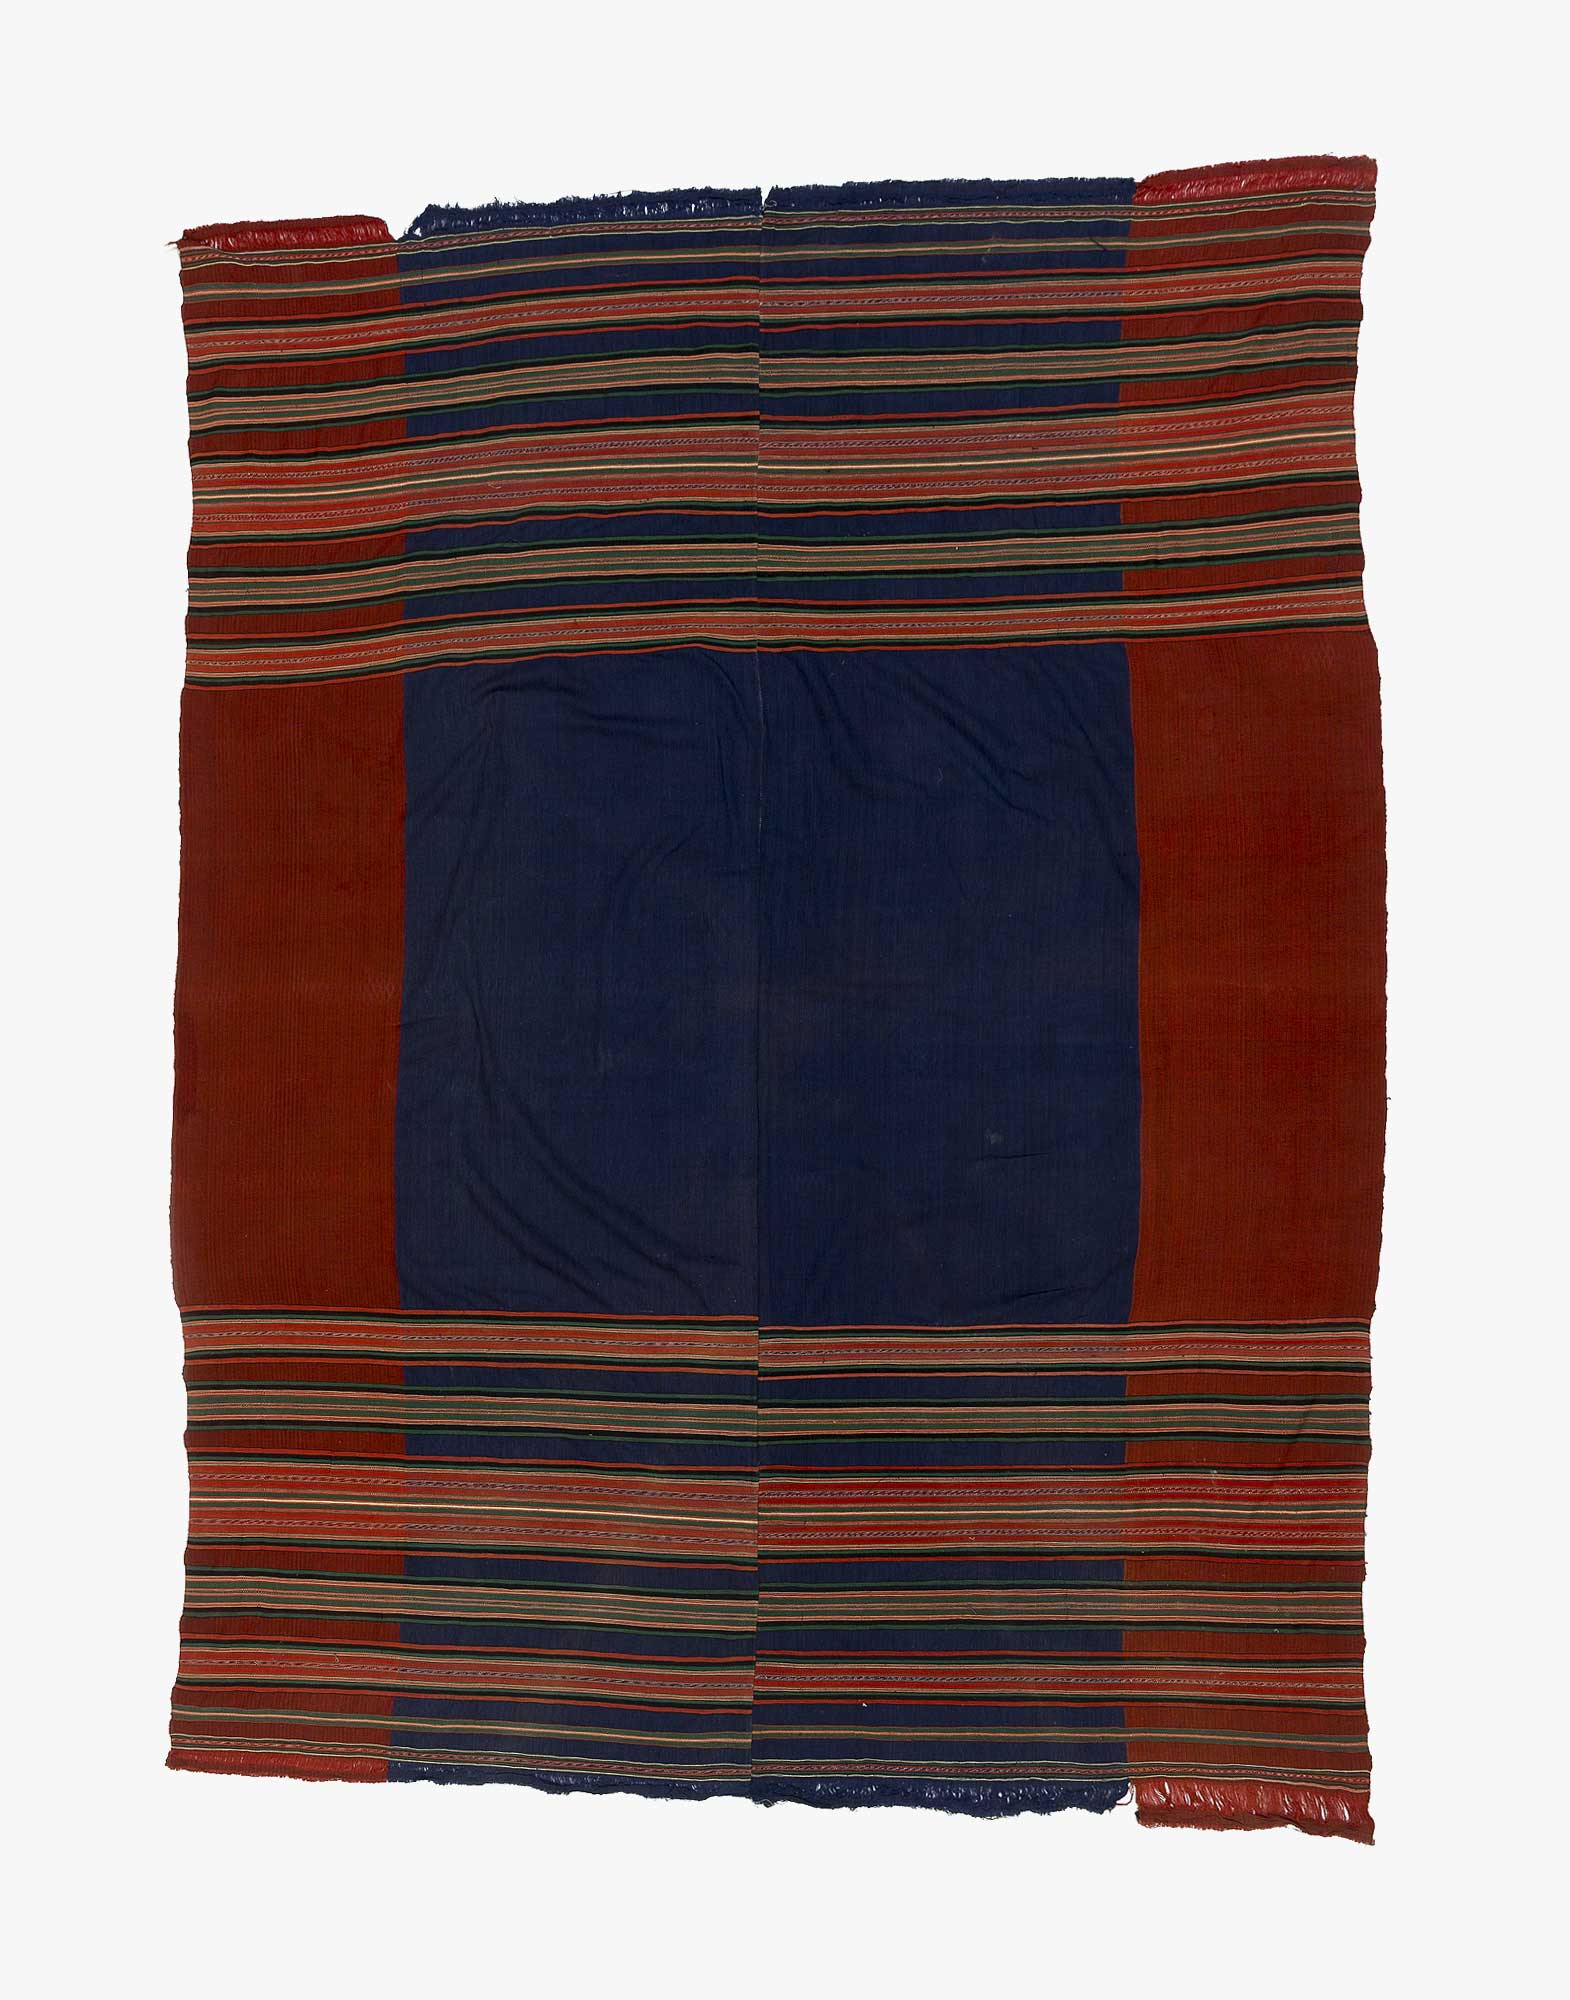 Afghanistan Belouchi Tribe Village Textile Dress